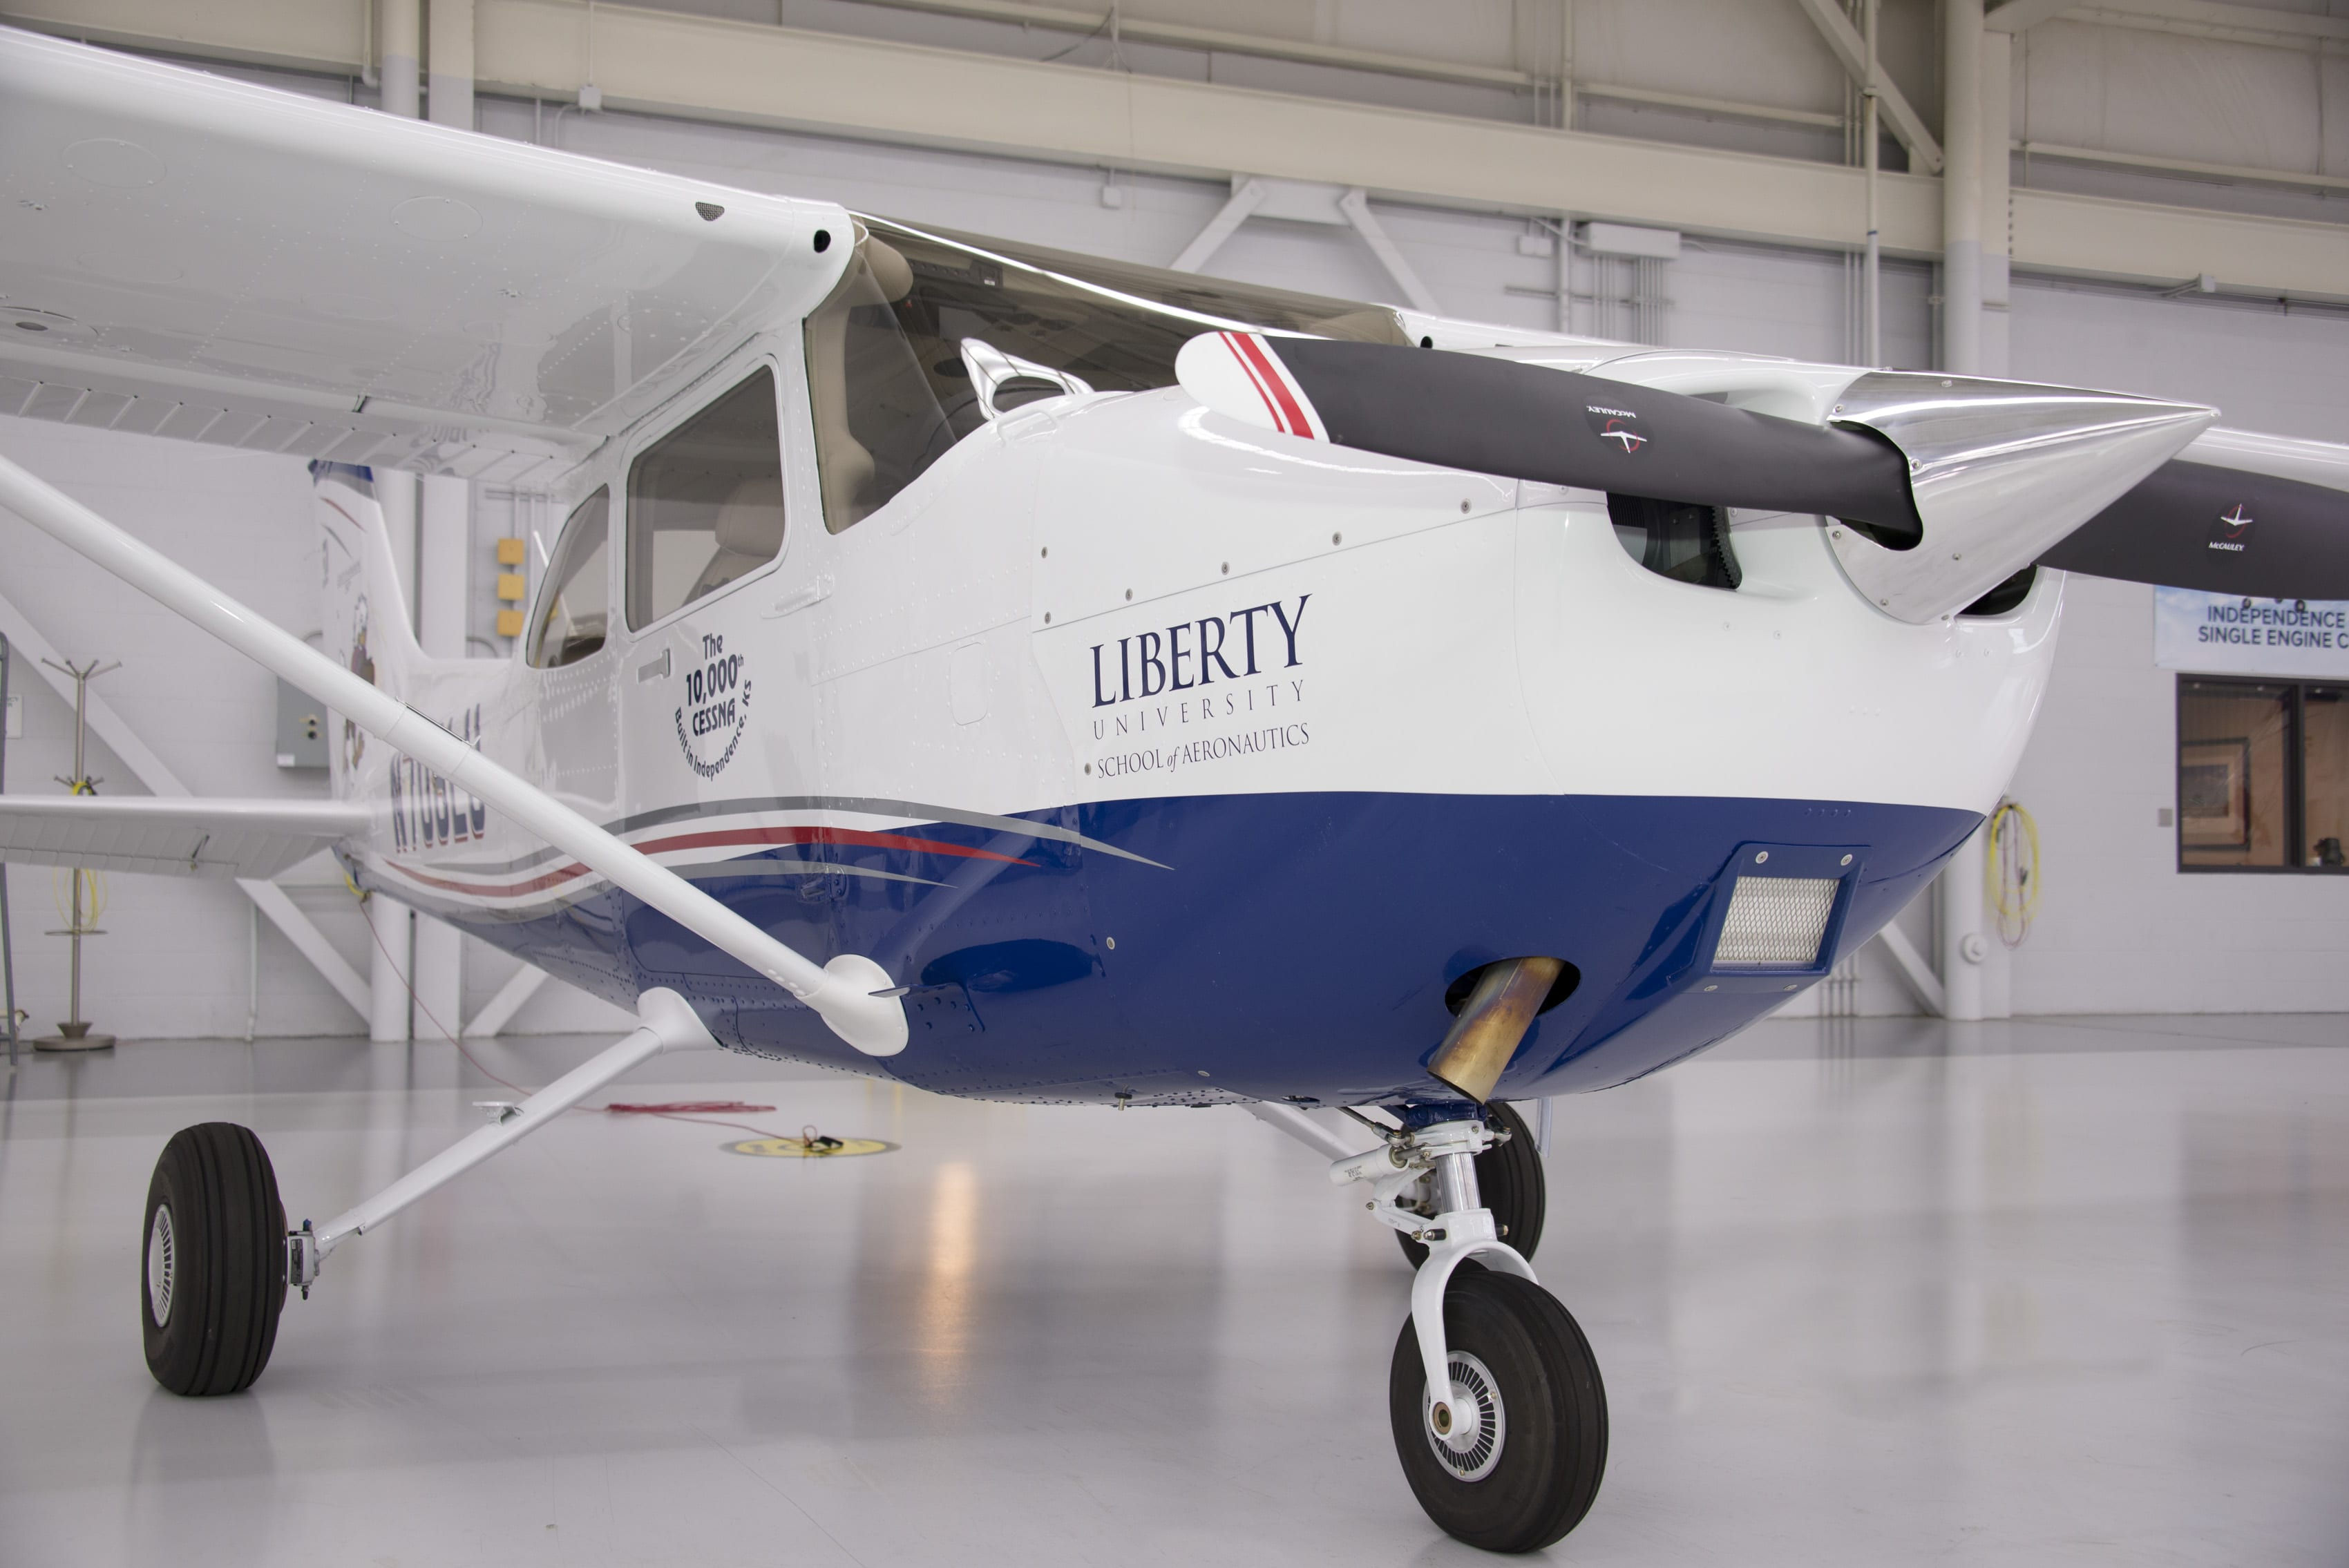 Cessna Independence facility delivers 10,000th aircraft